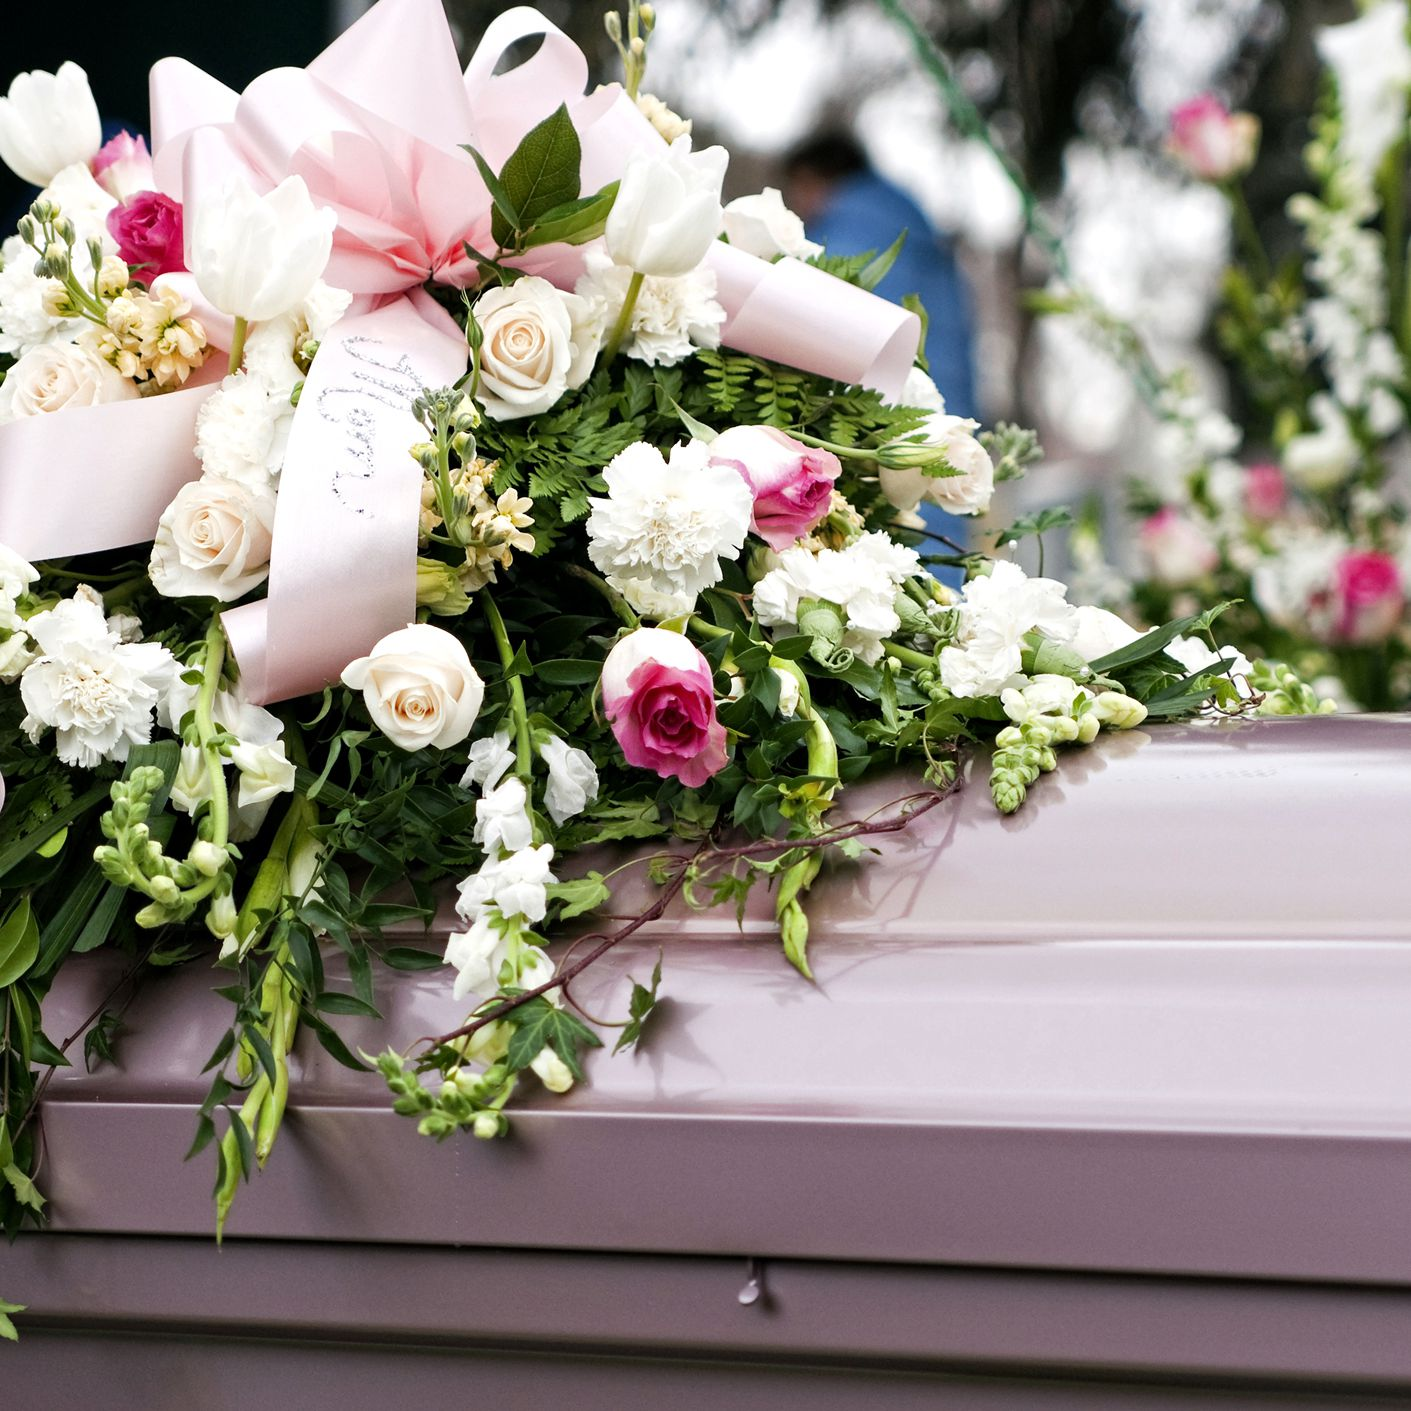 What To Do With Funeral Flowers